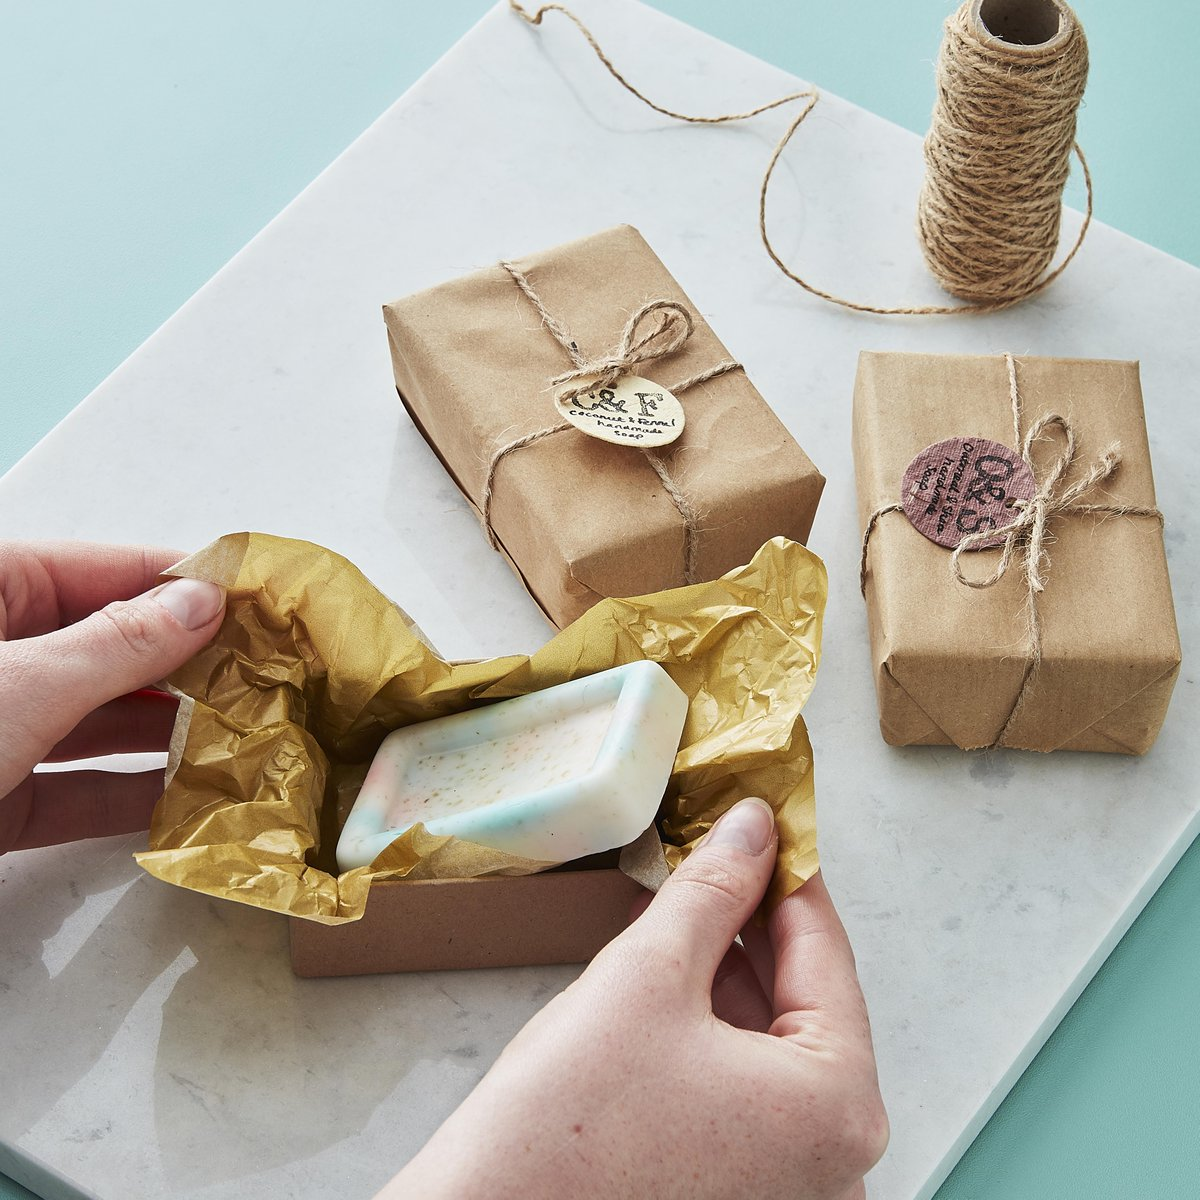 Trend alert: Soap making!   This wonderful craft will be easy to master, and your unique creations are certain to make the perfect gift for a loved one, ideal for adding to hampers.  Follow our guide: https://t.co/laNQJ5K4Oo  #GetStartedIn #SoapMaking #Hobbycraft https://t.co/pDtQgXPjho